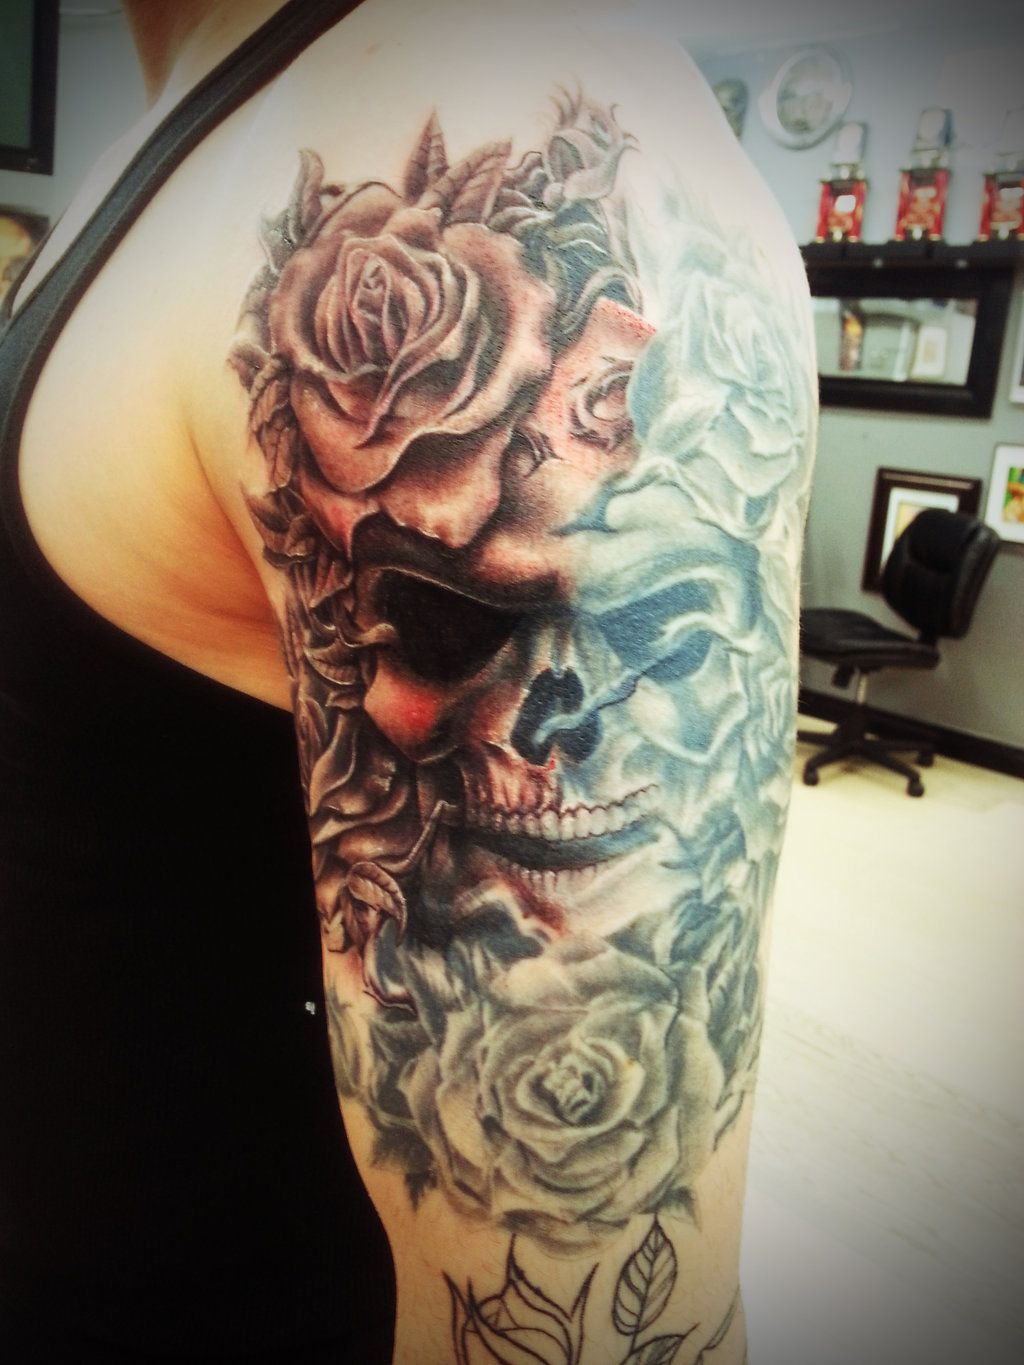 skull with roses on arm by thepipper27 tattoos. Black Bedroom Furniture Sets. Home Design Ideas